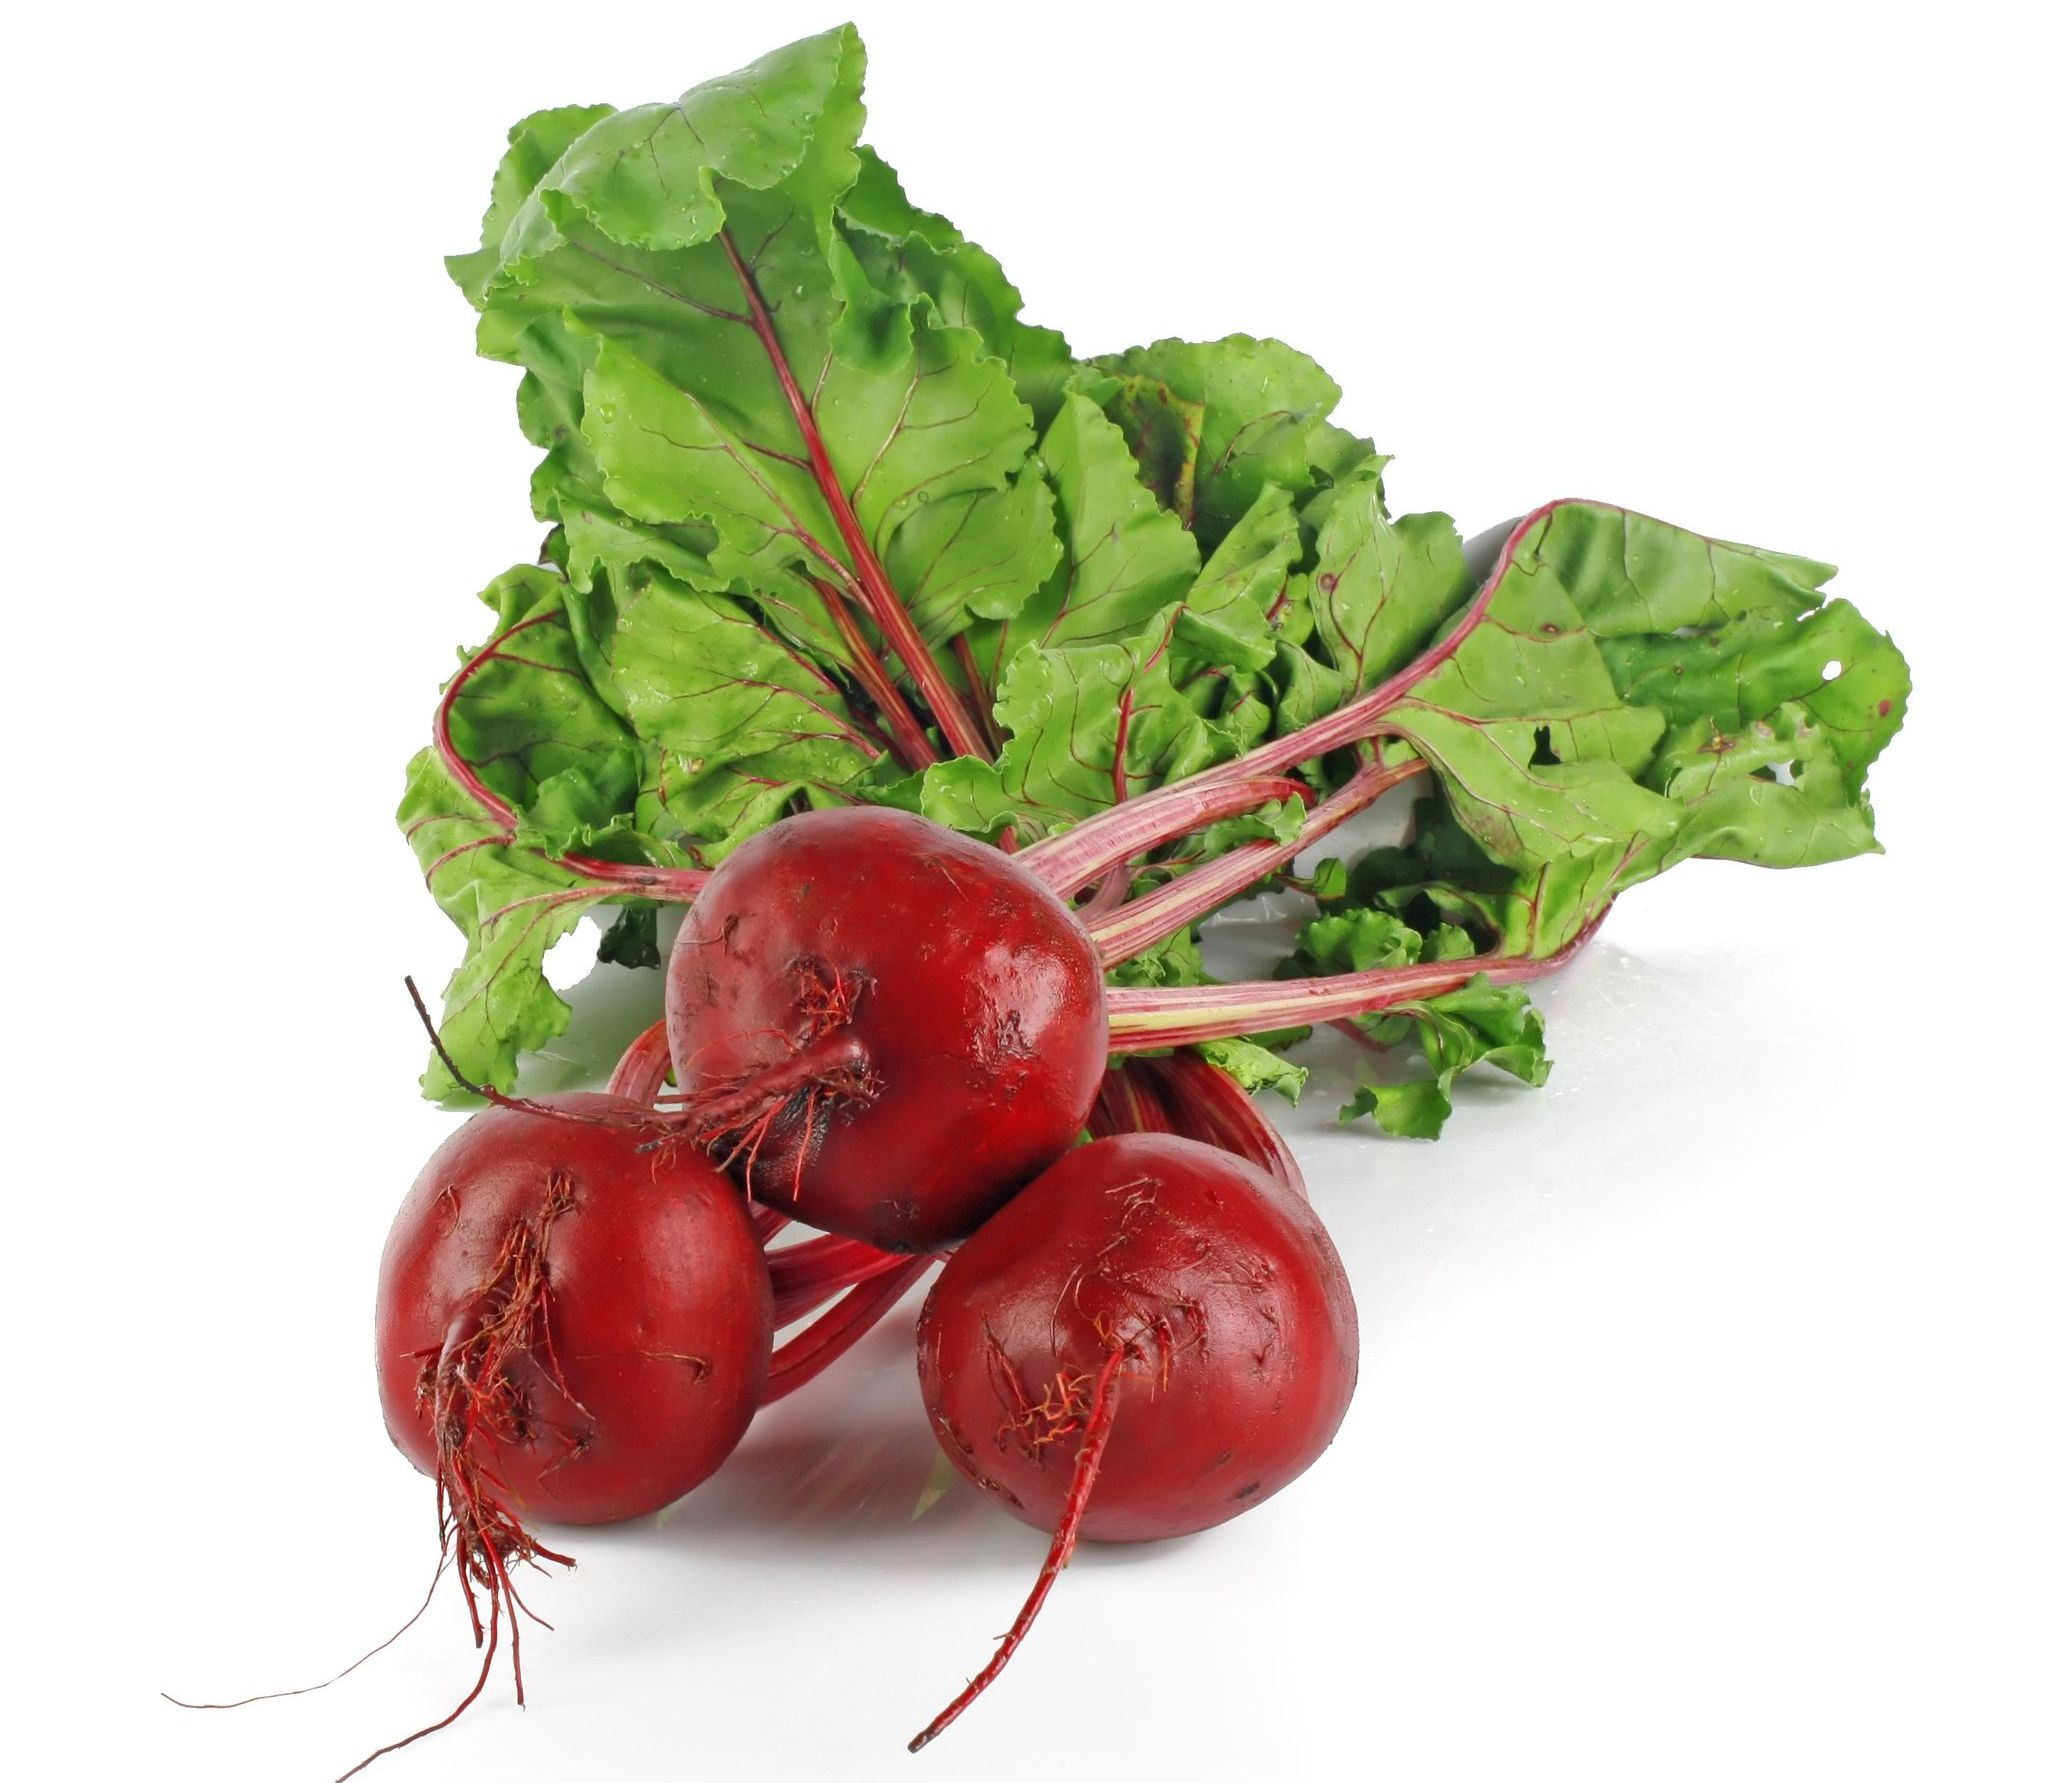 Beet Leaf/Root Powder or Beet Root Juice Powder